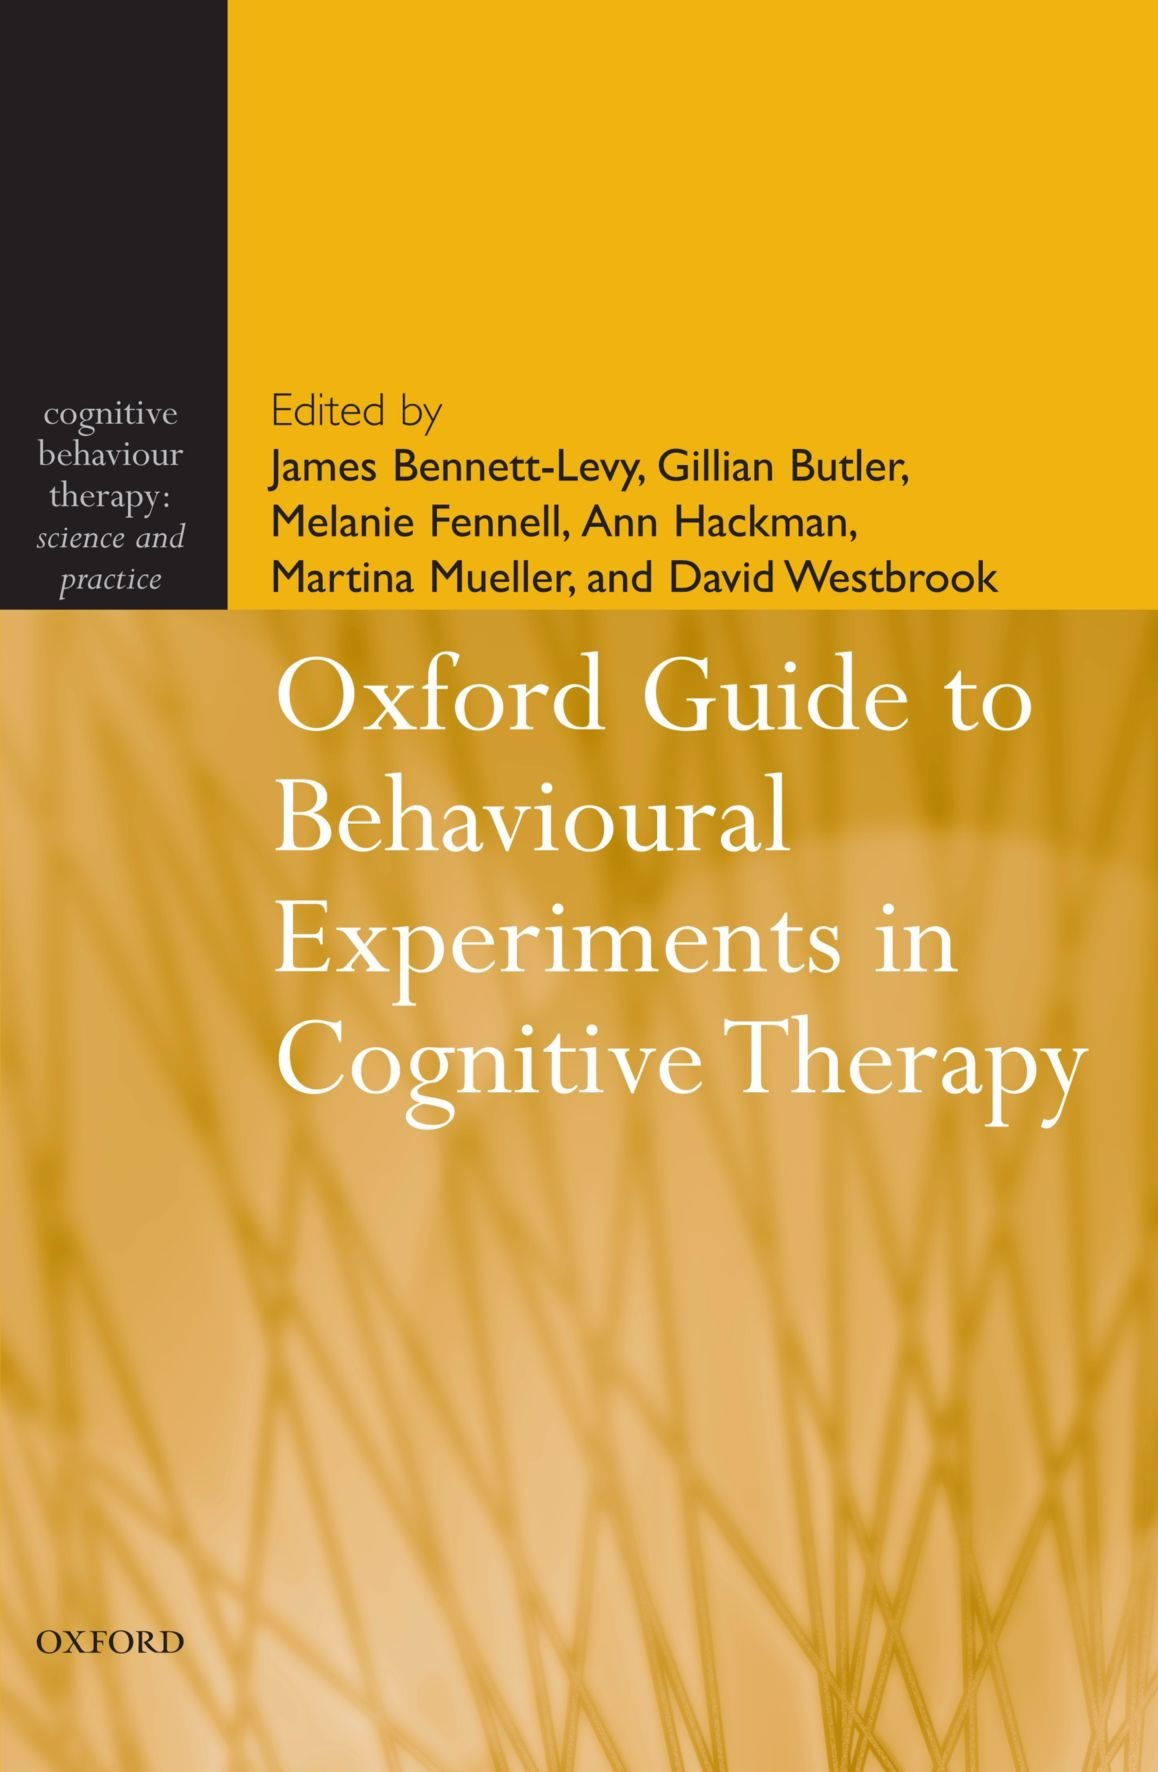 Oxford Guide to Behavioural Experiments in Cognitive Therapy (Cognitive Behaviour Therapy: Science and Practice)